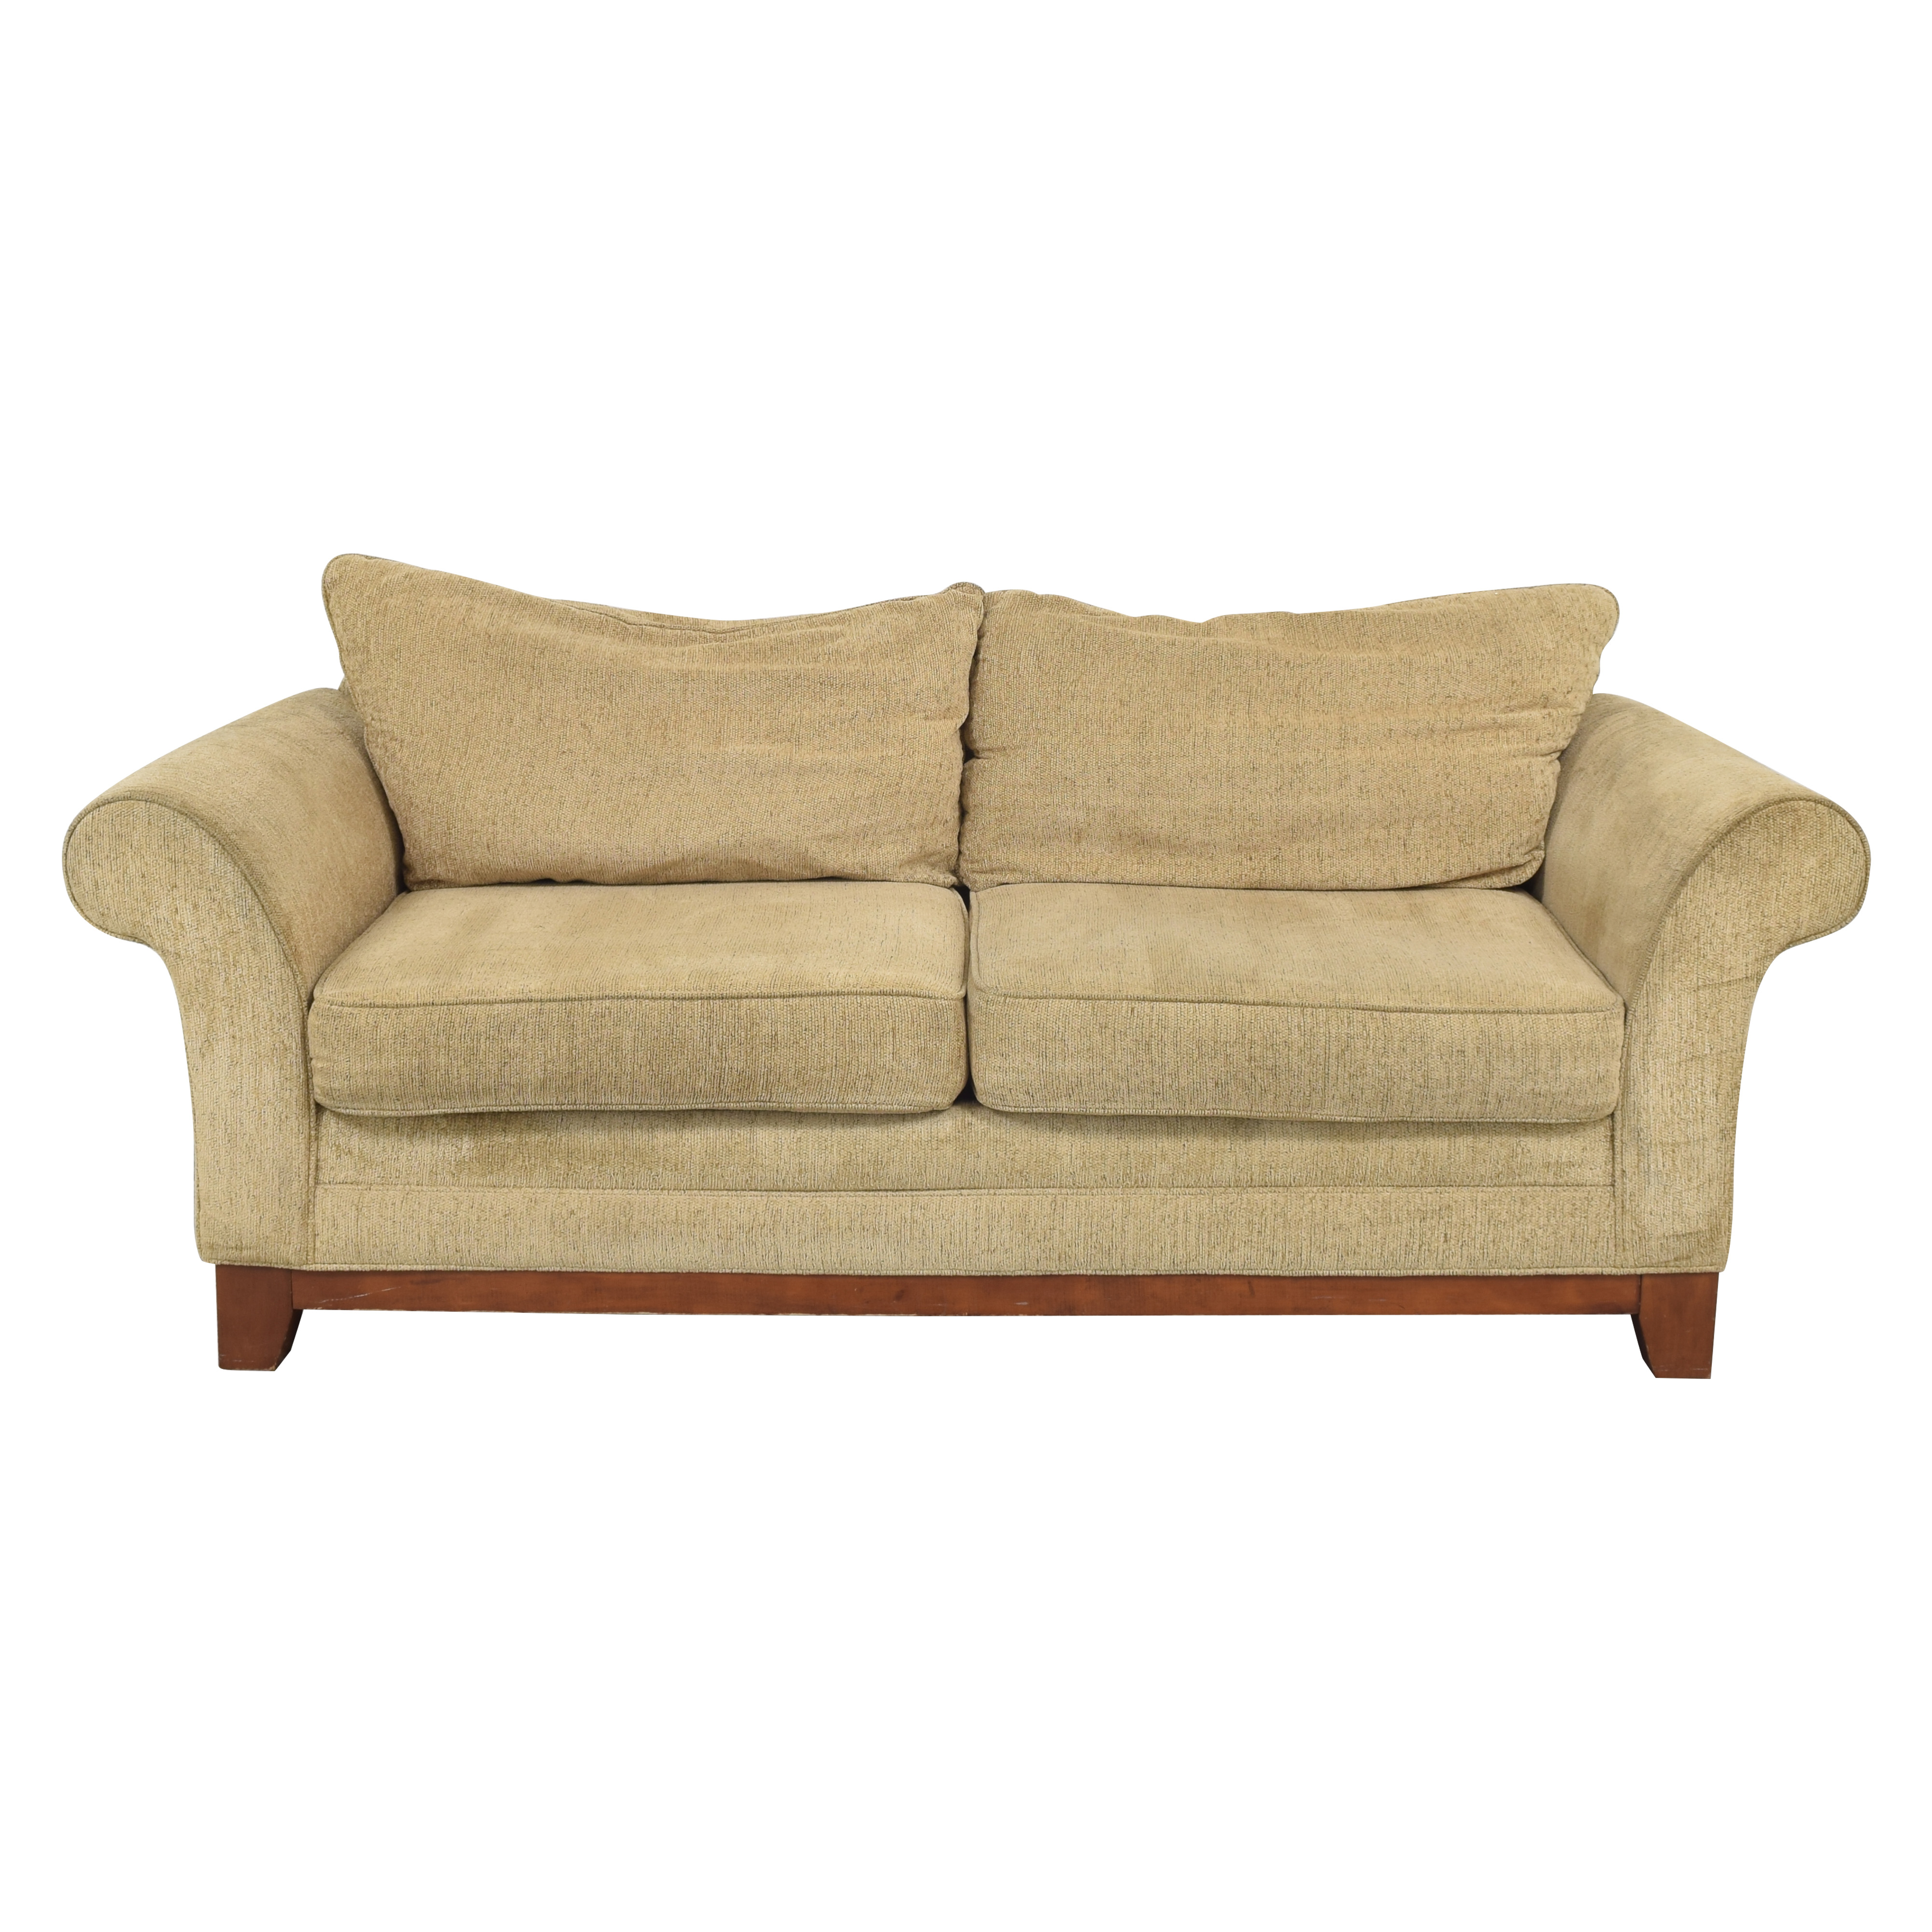 shop  Rolled Arm Two Cushion Sofa online